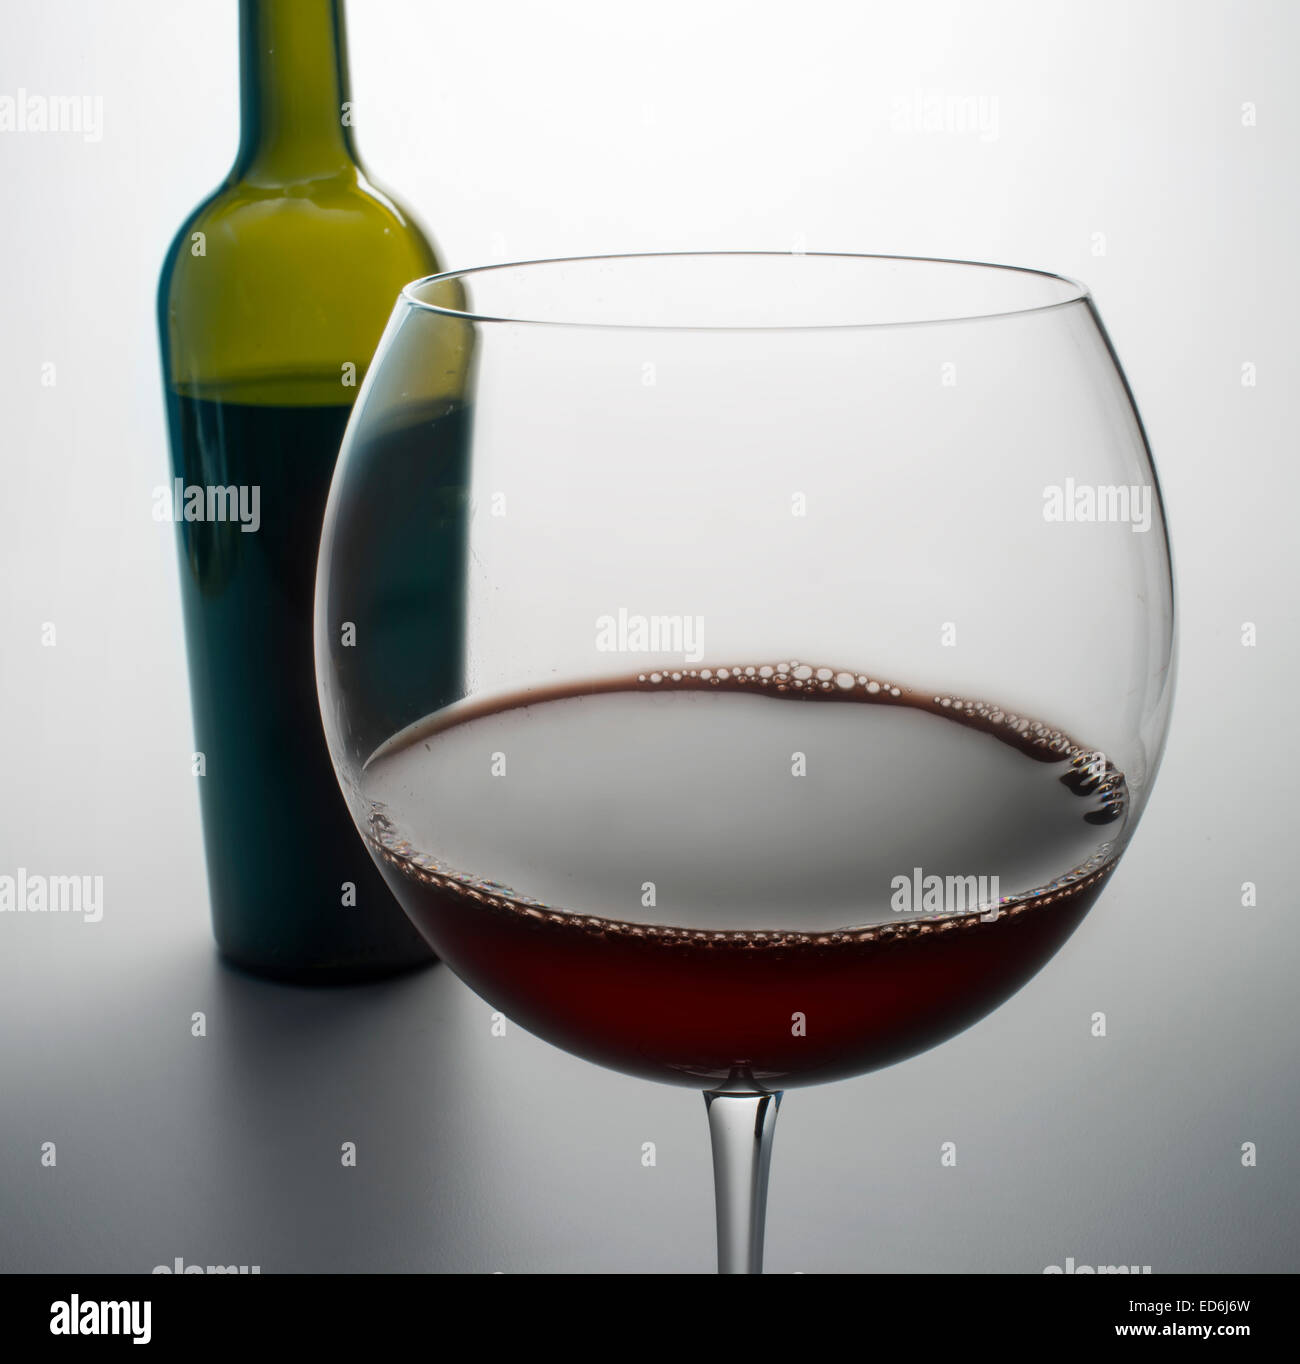 wine bottle and glass - Stock Image